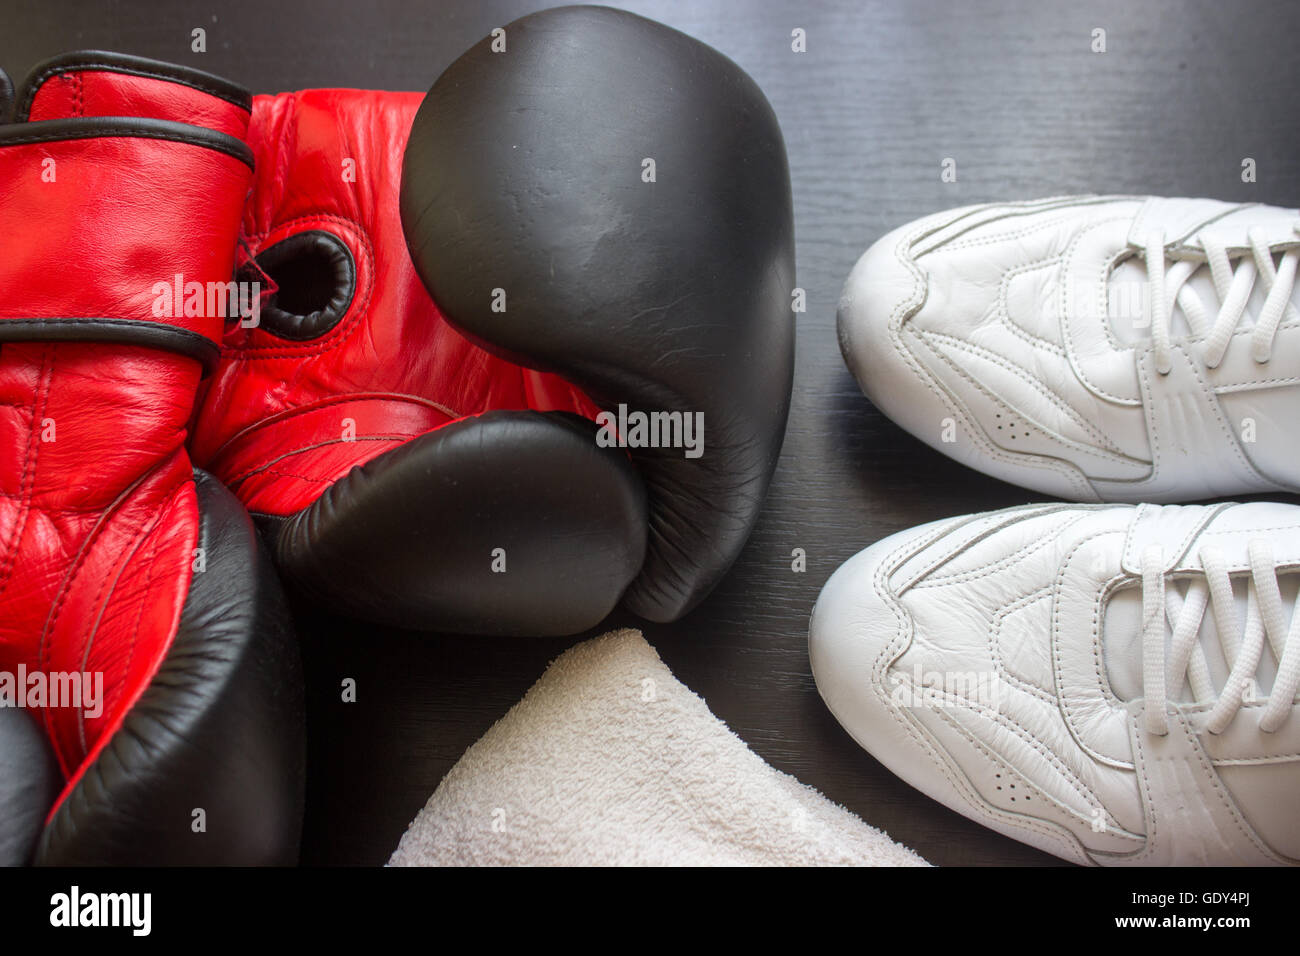 Boxing shoes, gloves and towel on black